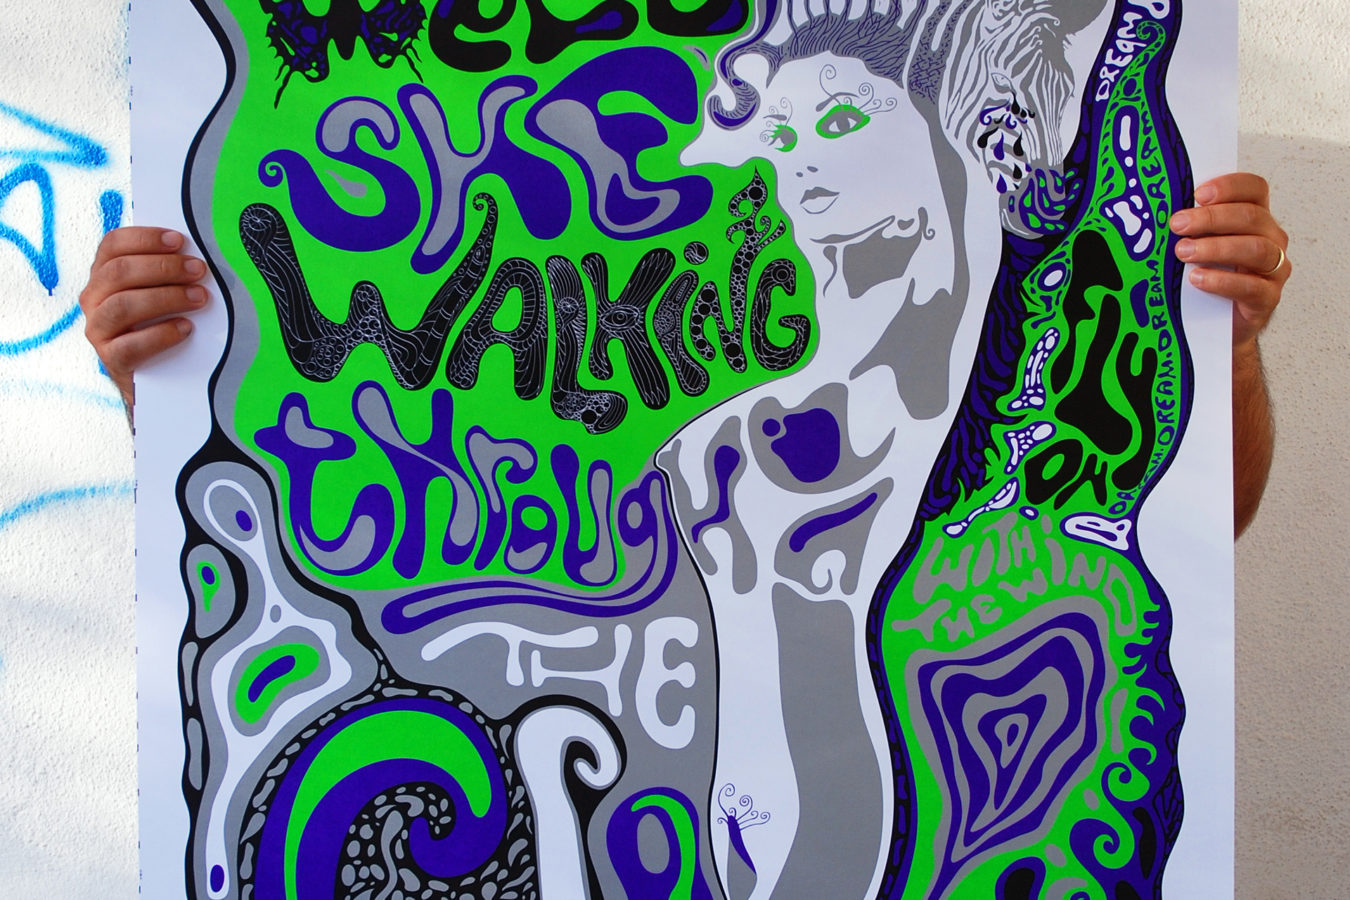 Little Wing Poster<br>Mola Ativism